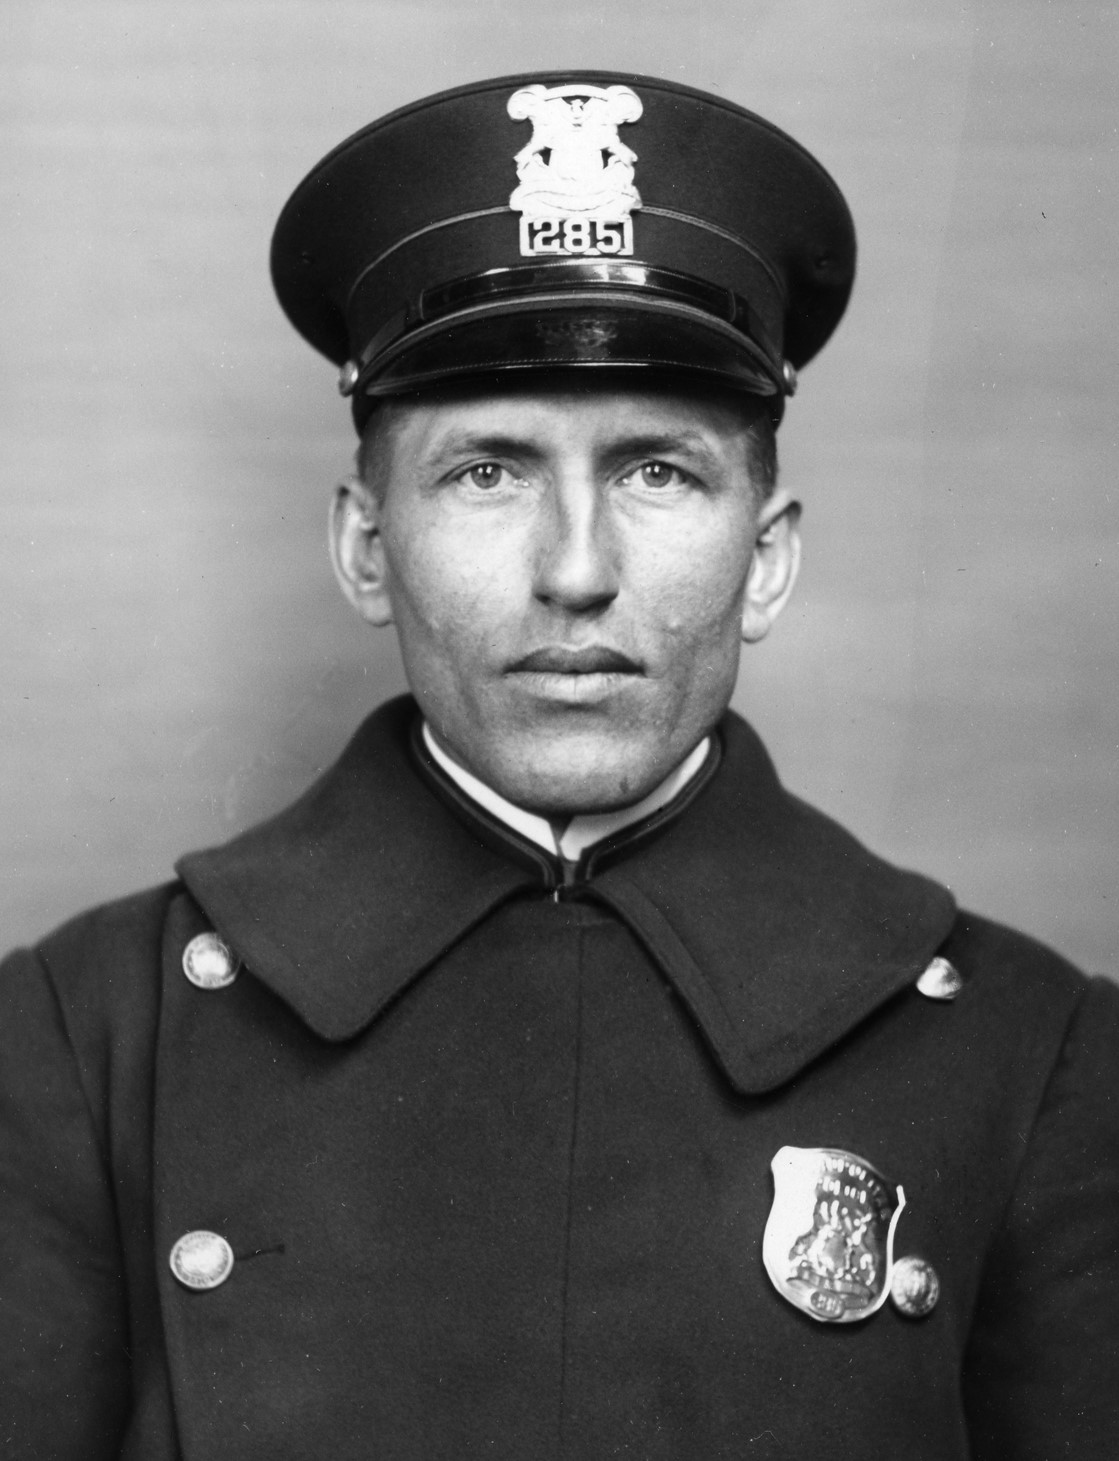 Detective Louis Bomka | Detroit Police Department, Michigan